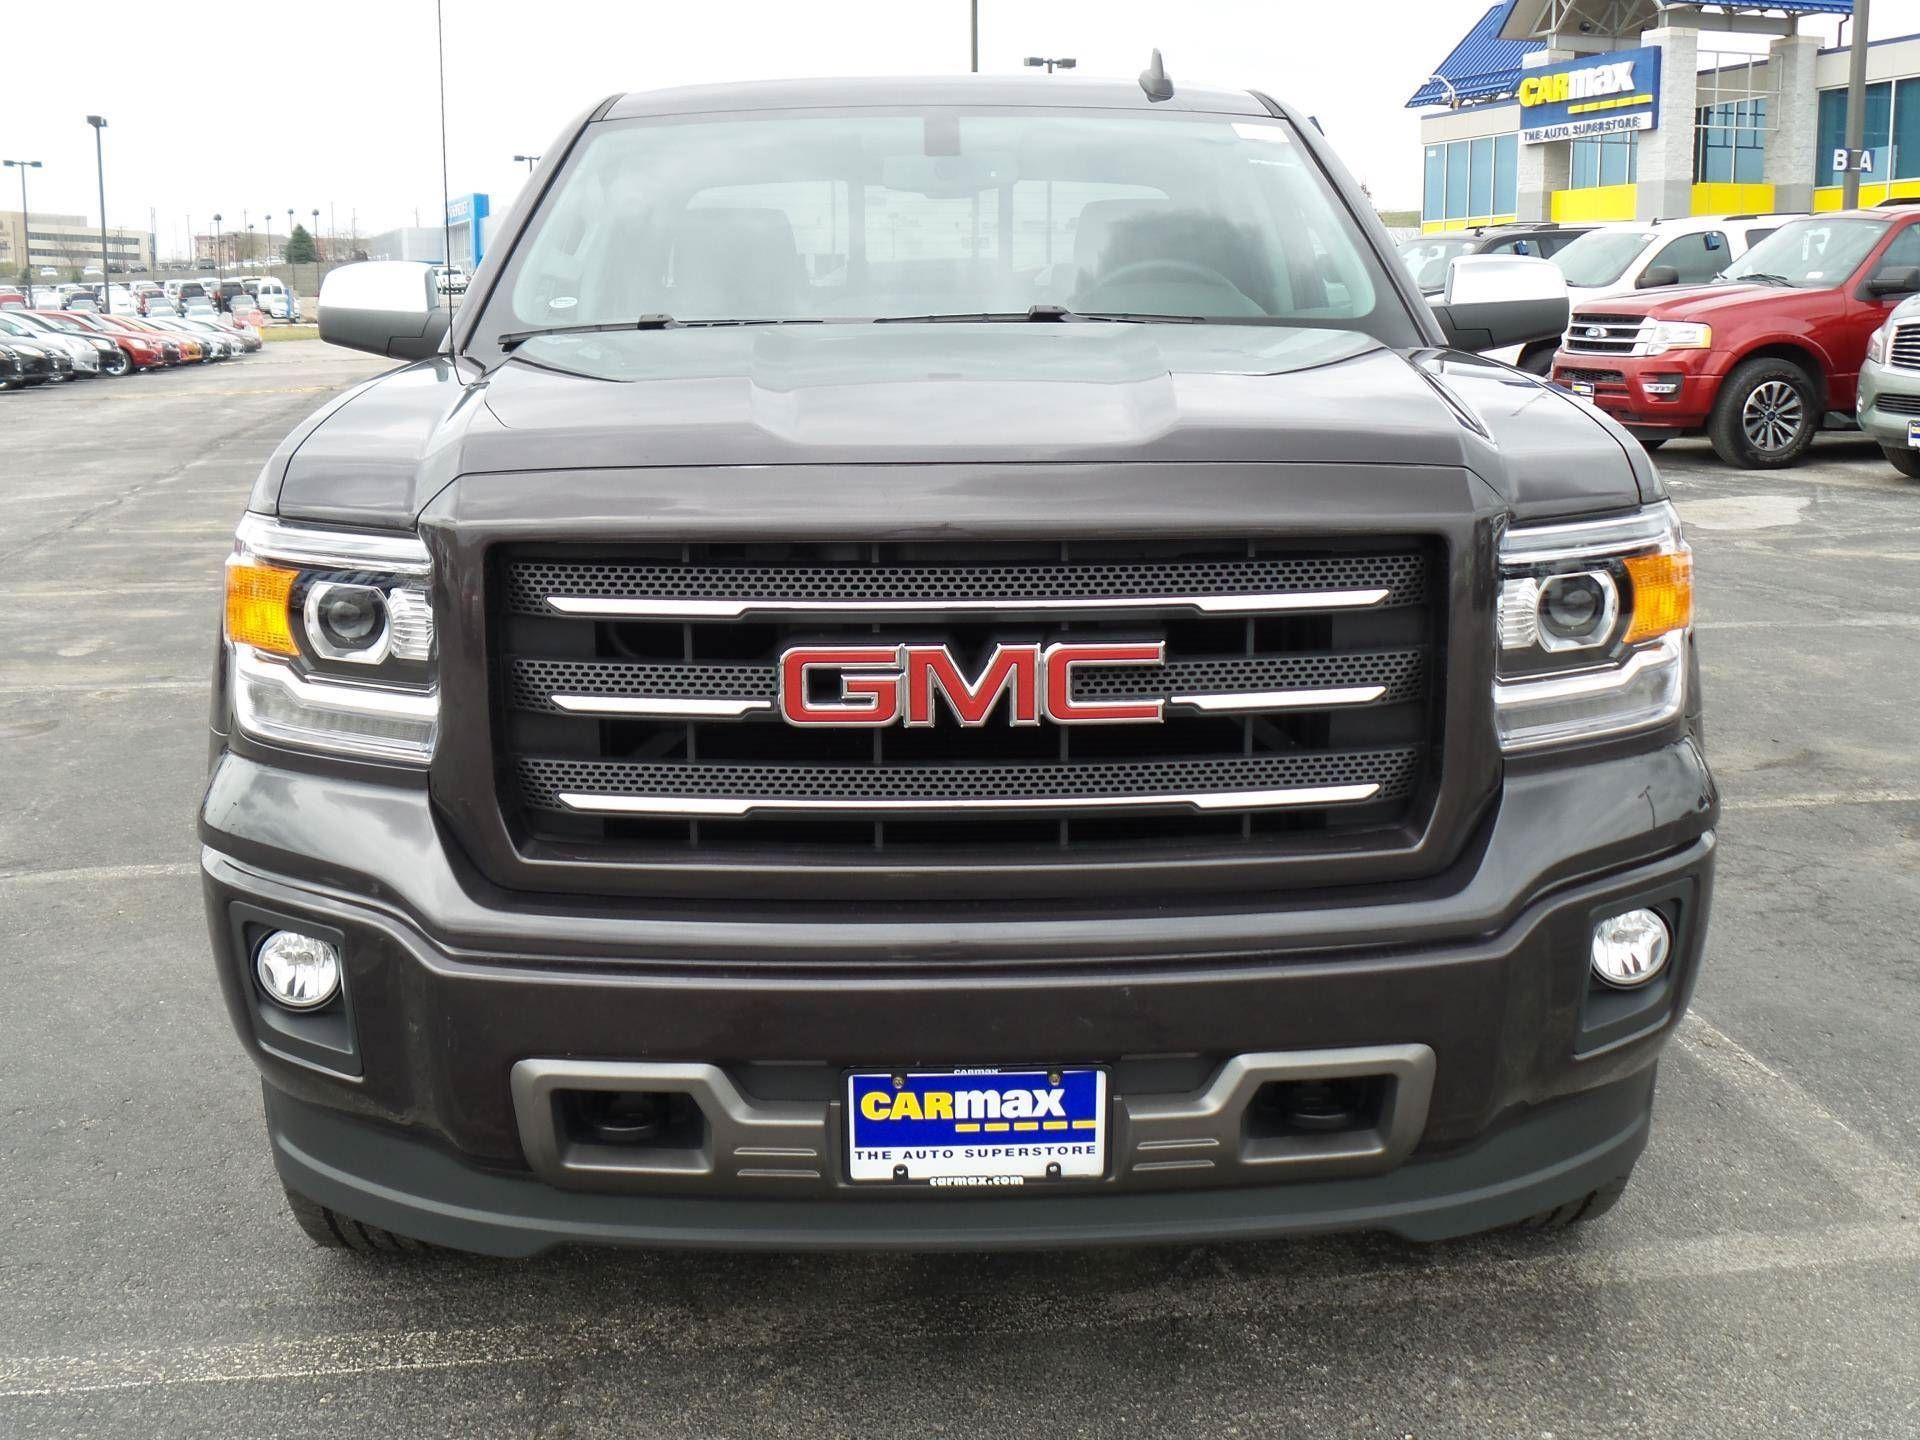 2015 Gmc Sierra 1500 Sle In Omaha Ne 13032881 At Carmax Com